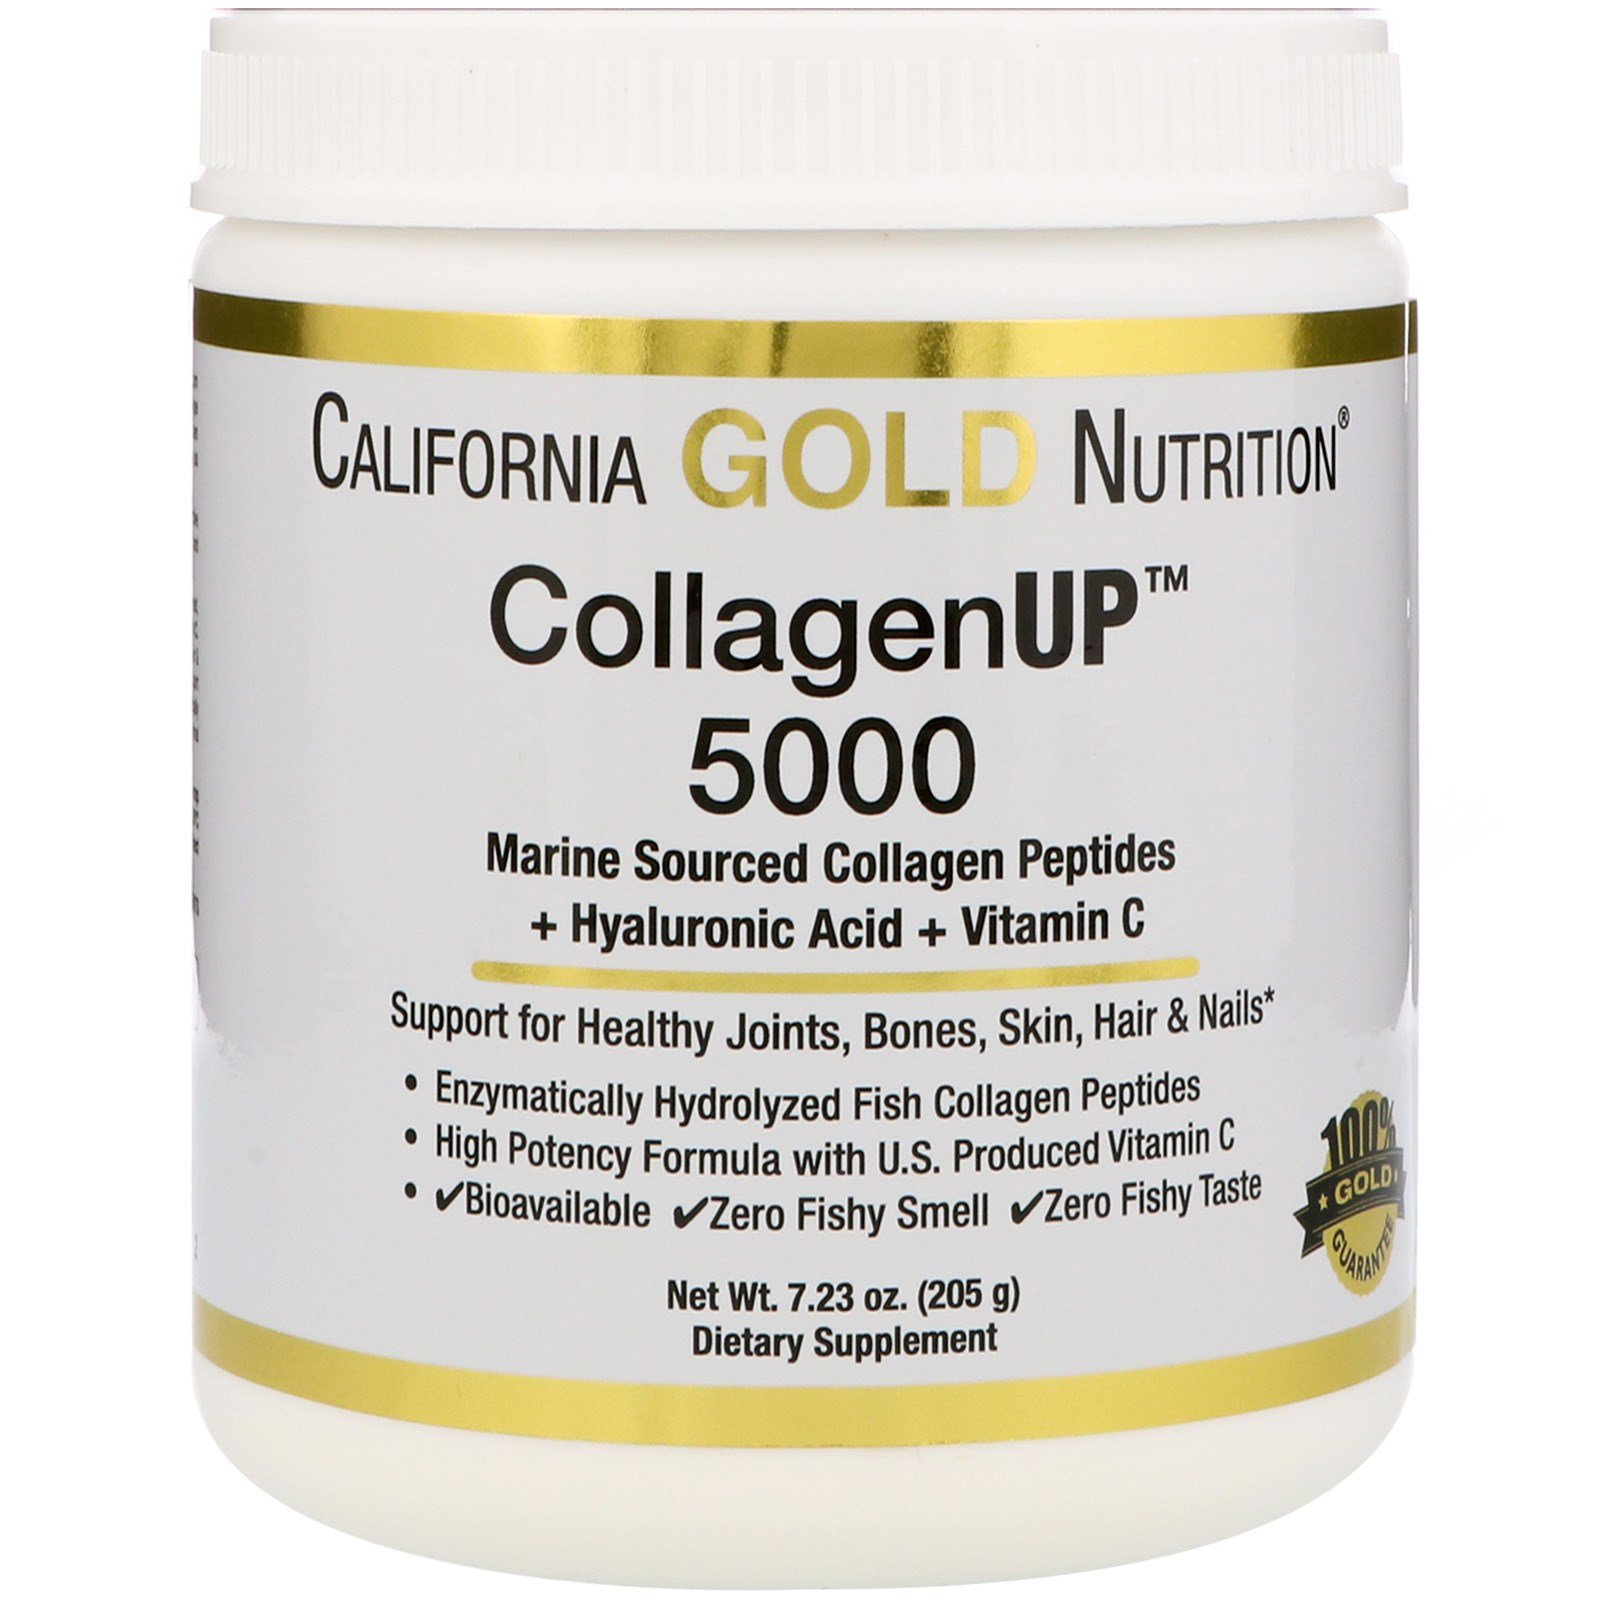 California Gold Nutrition, CollagenUP™ 5000, Marine Sourced Collagen Peptides + Hyaluronic Acid + Vitamin C